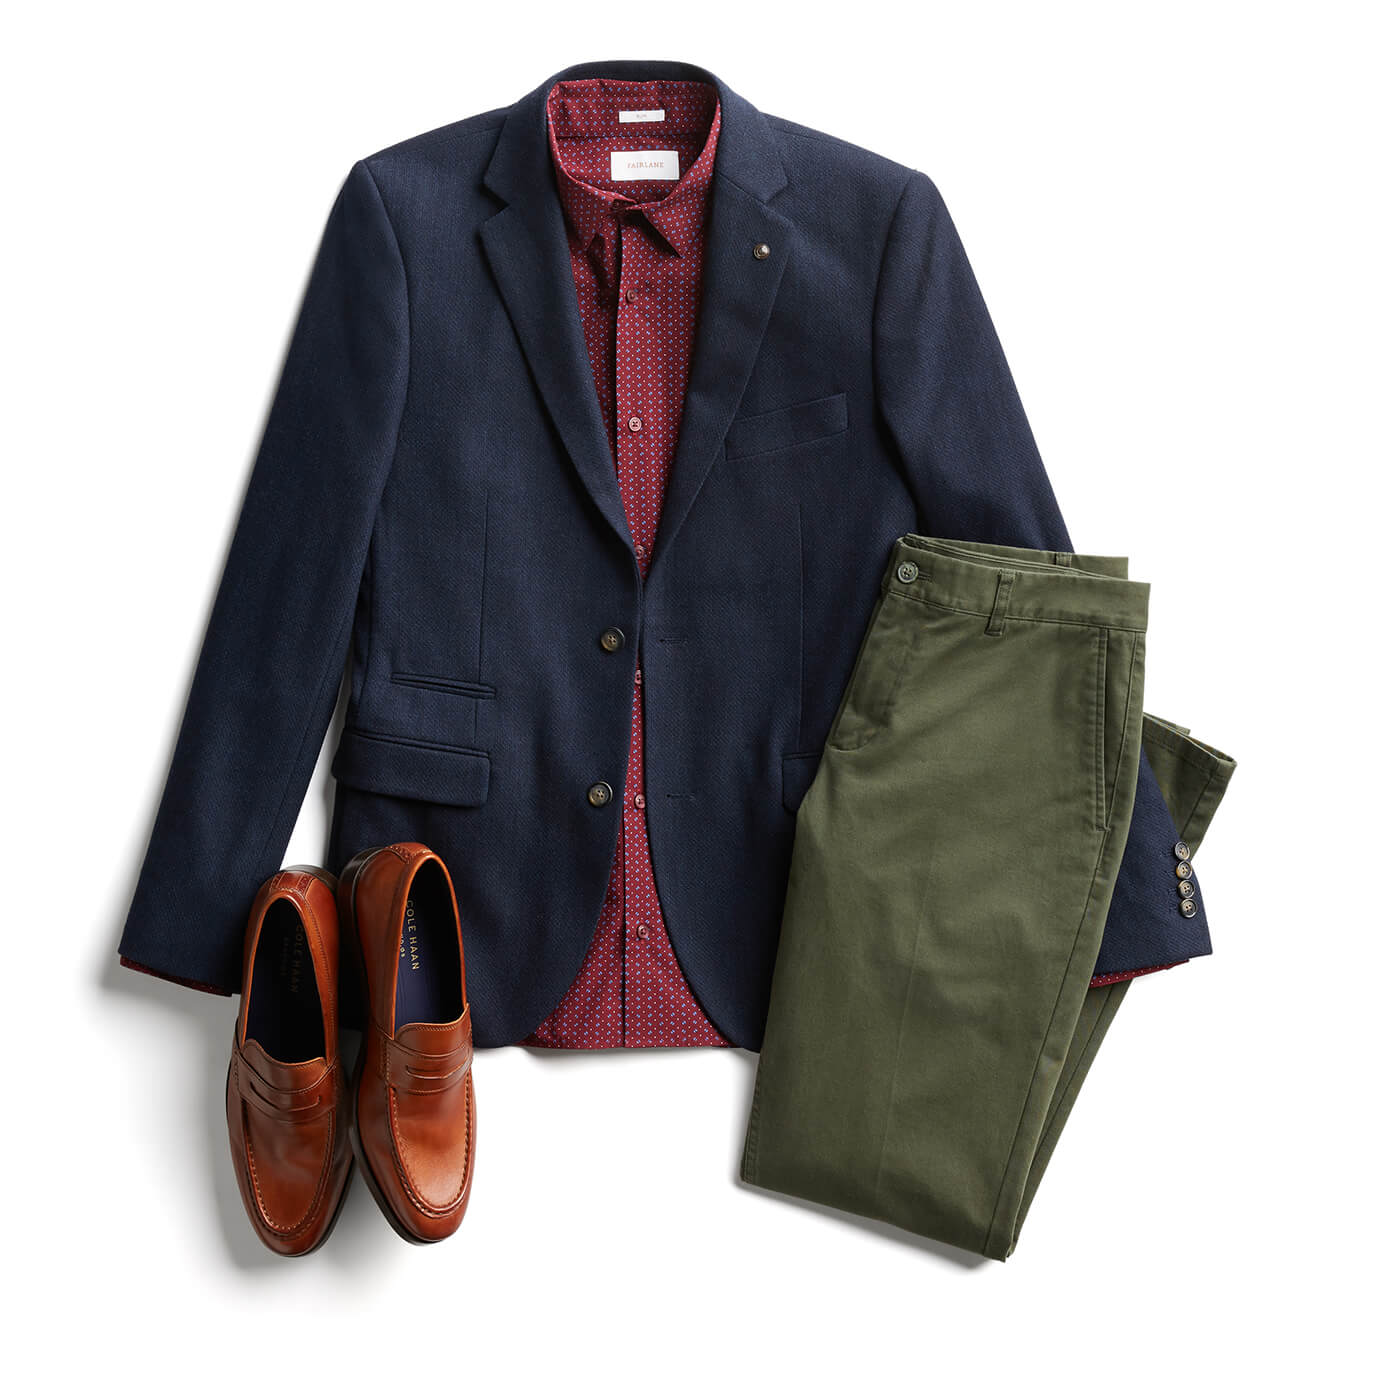 Men's Business Casual Outfit